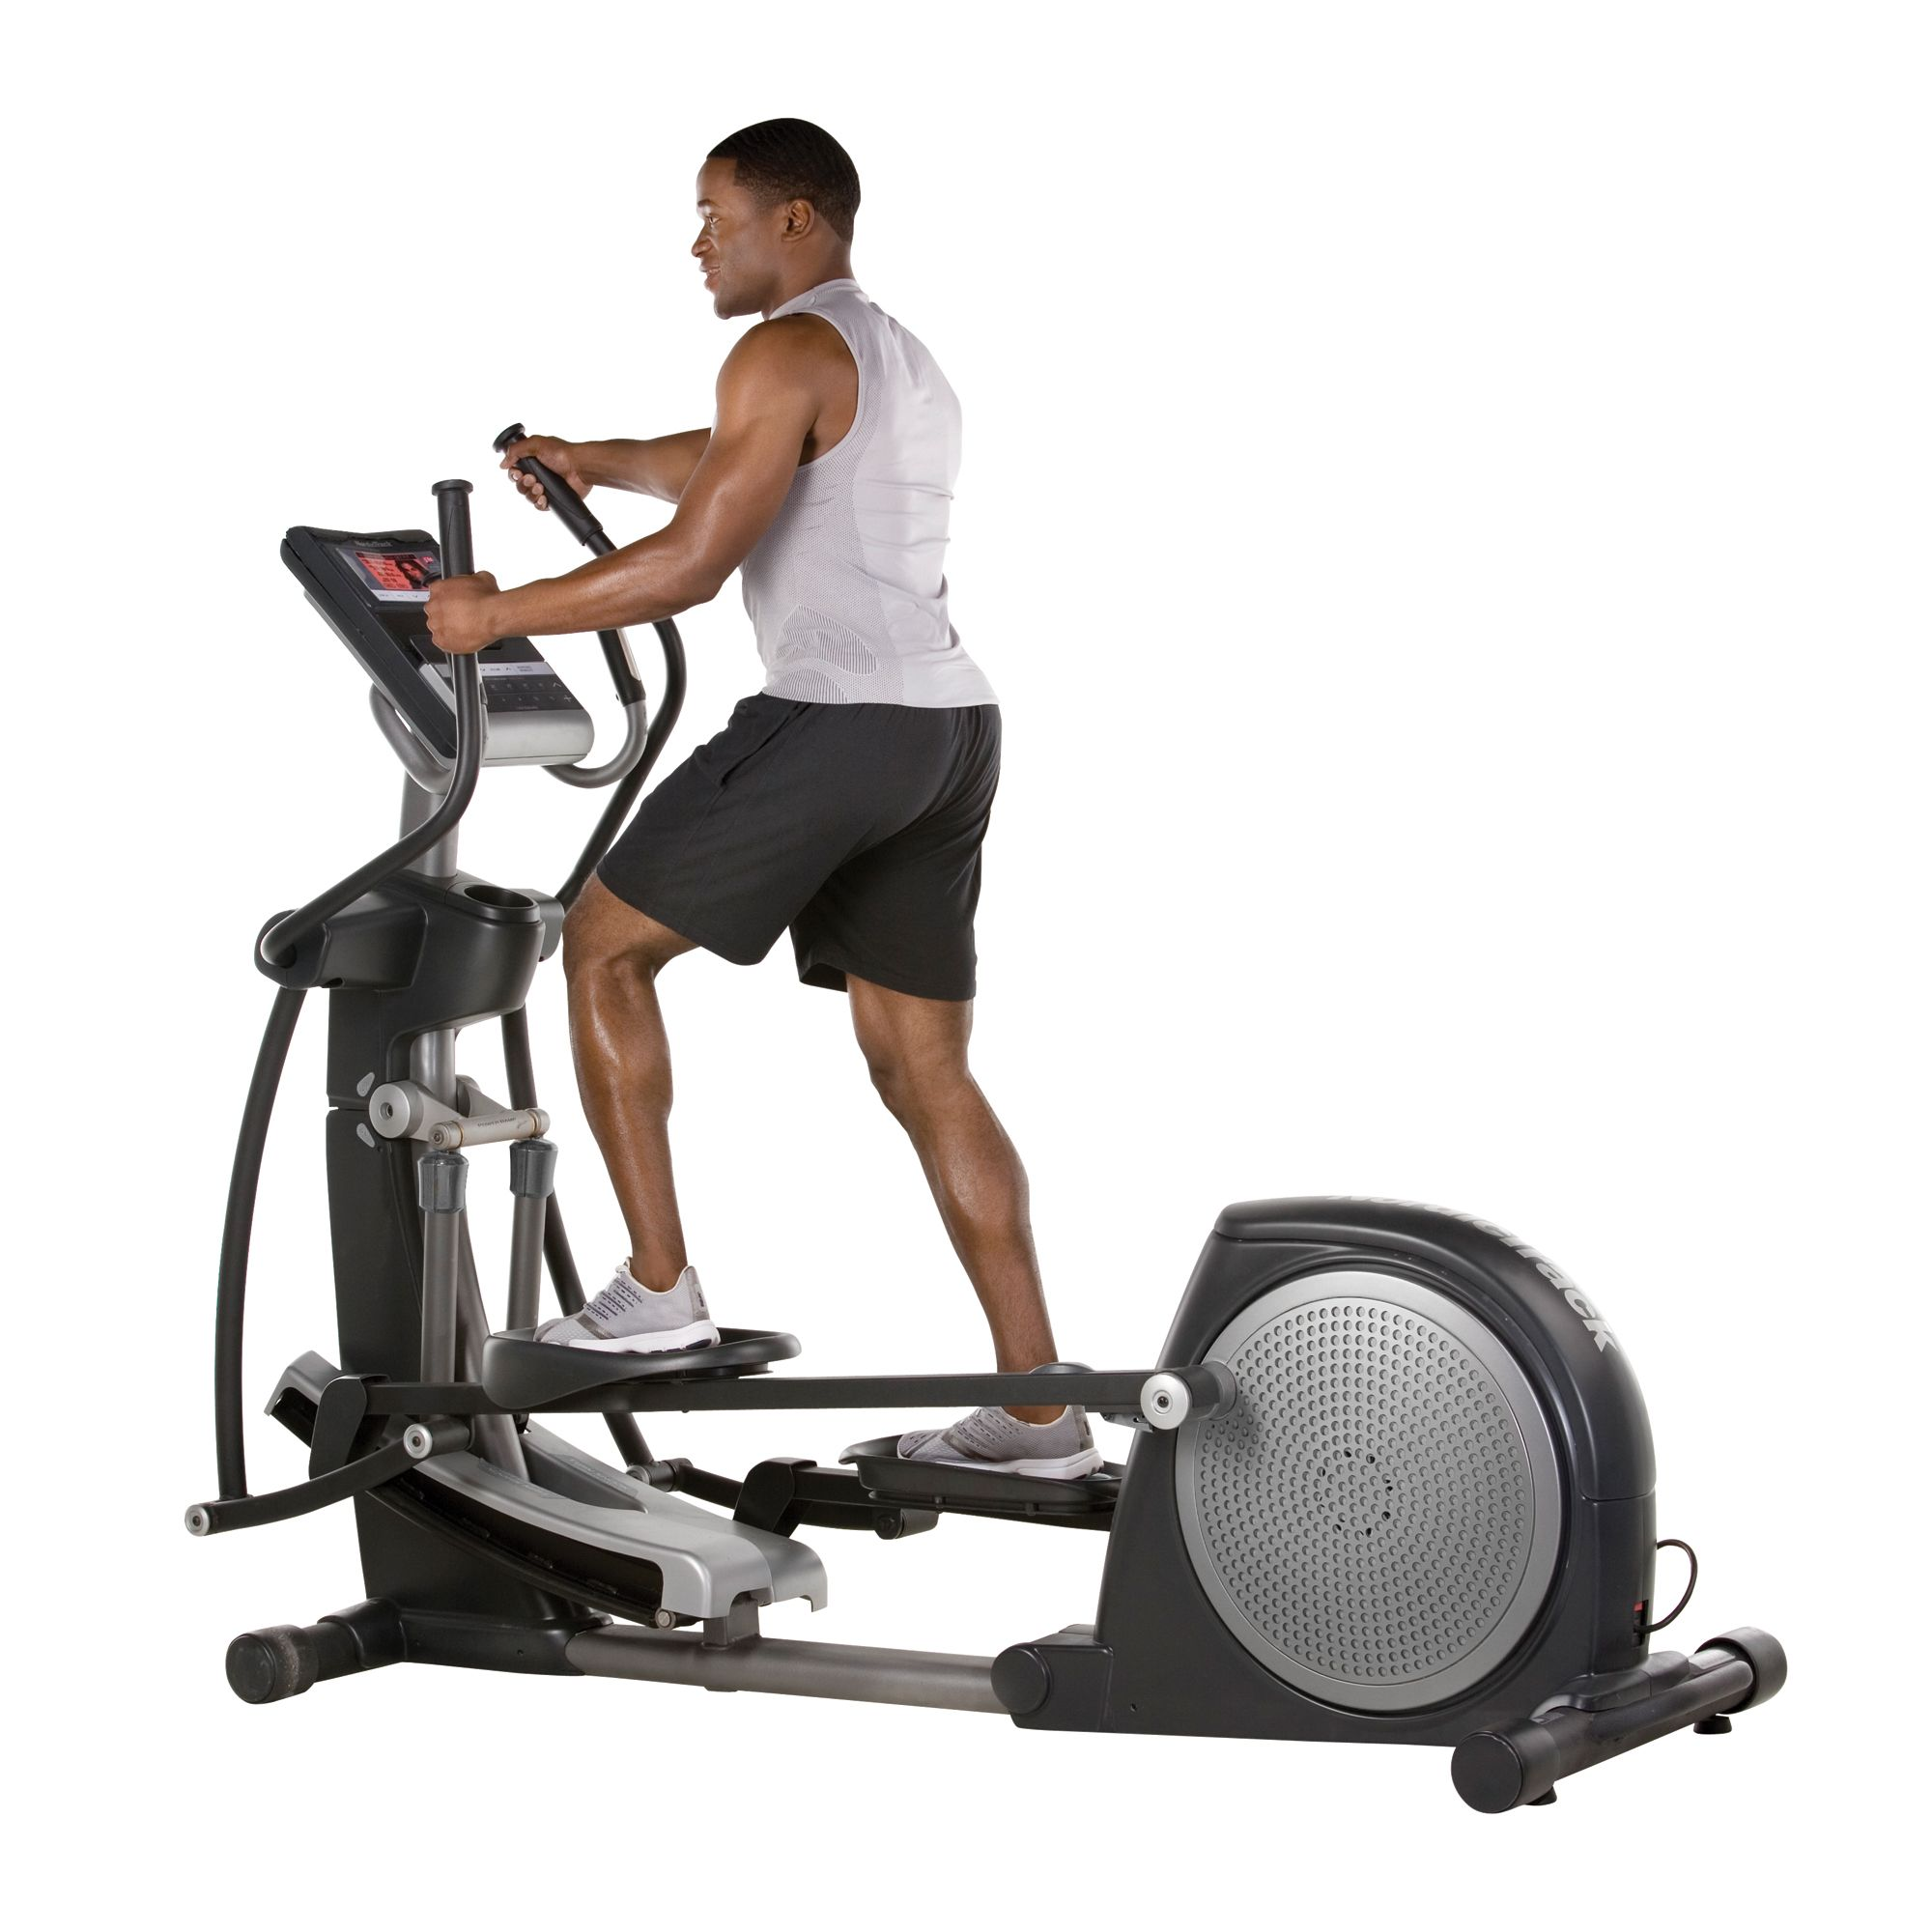 NordicTrack Pathfinder Elliptical Trainer